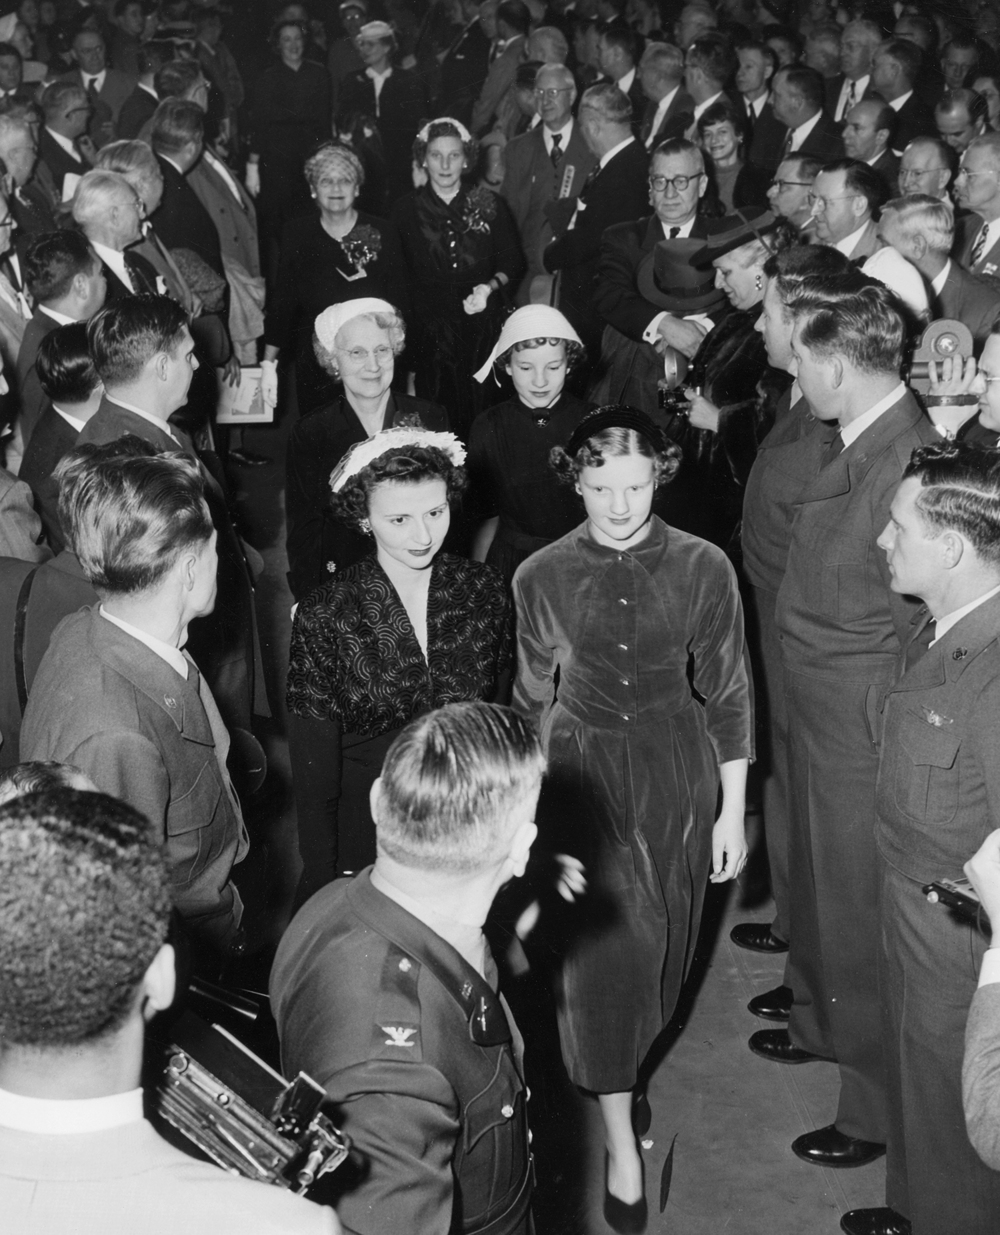 Gov. William Stratton inauguration Jan. 12, 1953 at the Illinois State Armory. Stratton's wife, Shirely with their daughter Sandra enter the Illinois State Armory. File/The State Journal-Register